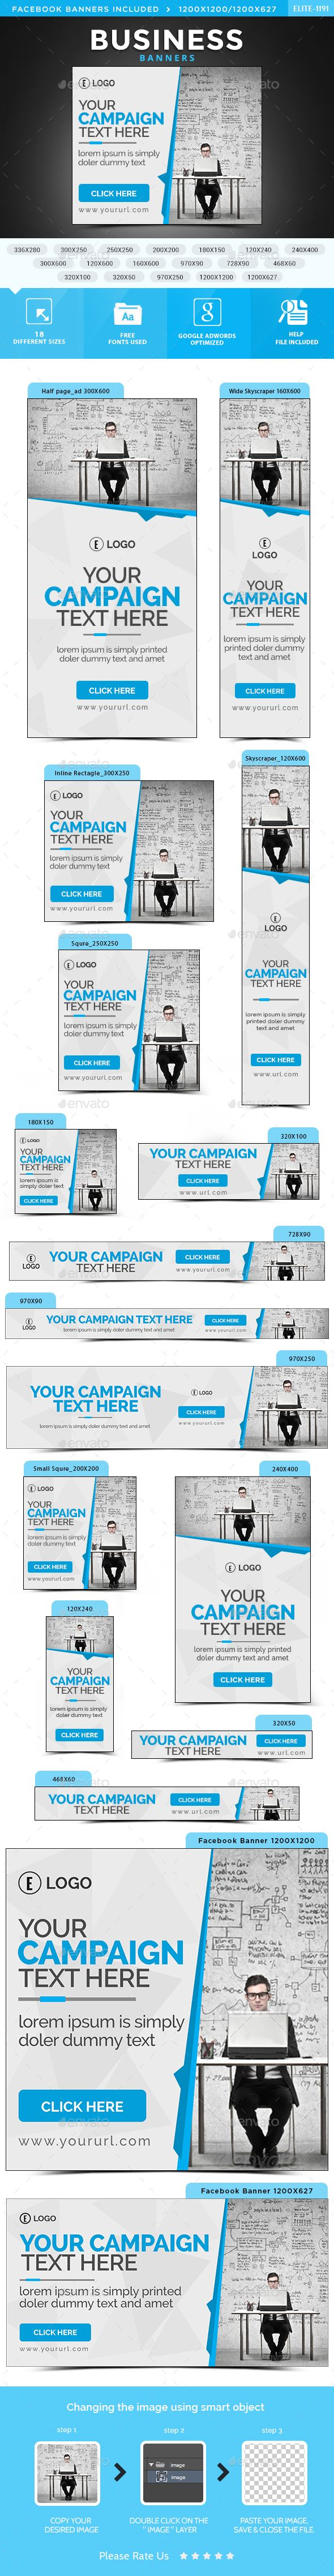 Business Web Banners Template PSD. Download here: http://graphicriver.net/item/business-banners/14918519?ref=ksioks